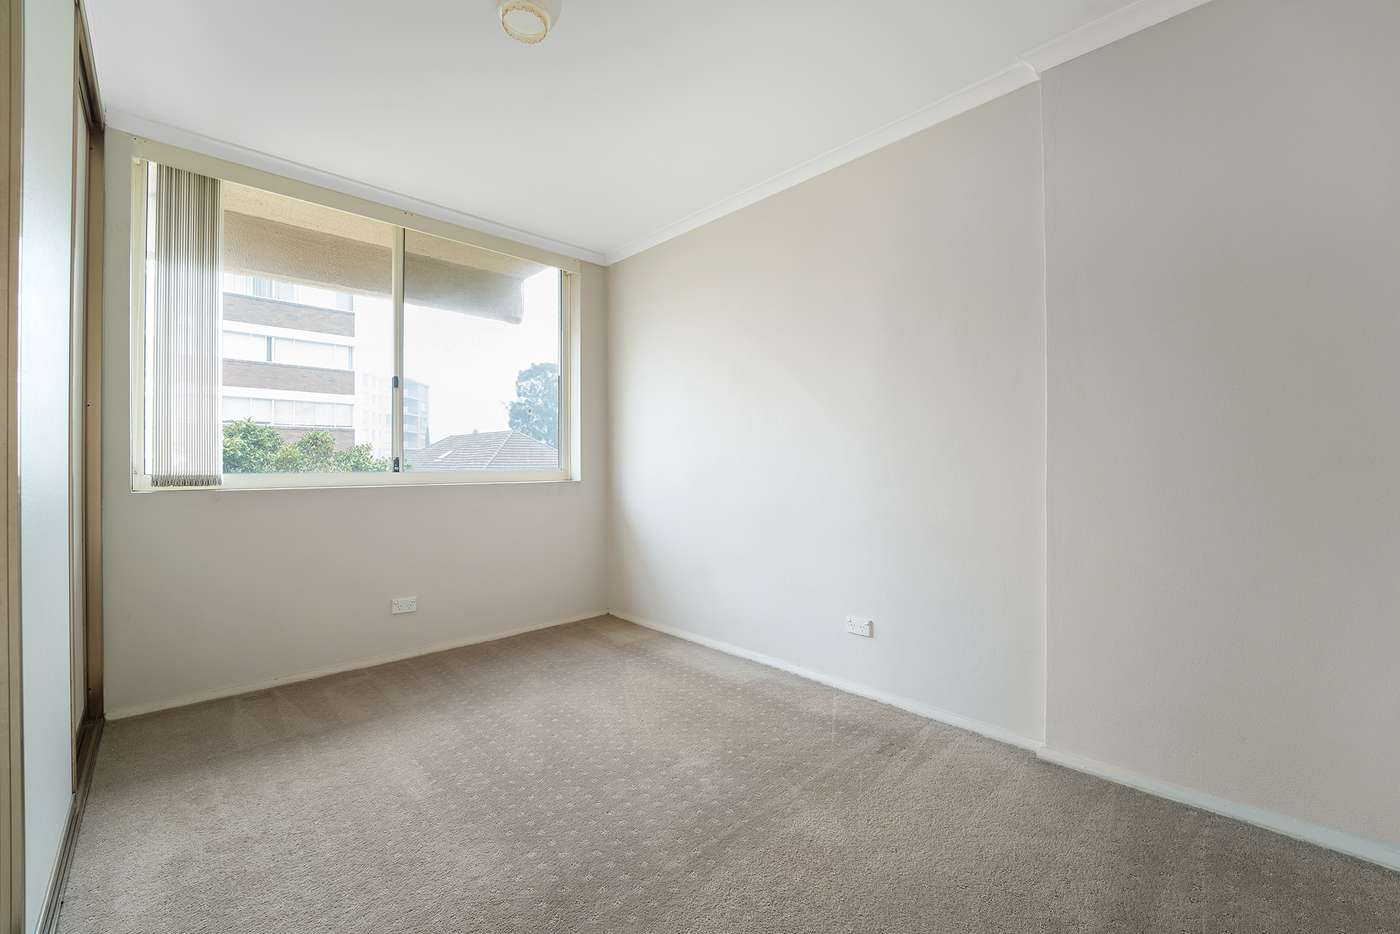 Seventh view of Homely apartment listing, 19/140 Holt Avenue, Cremorne NSW 2090